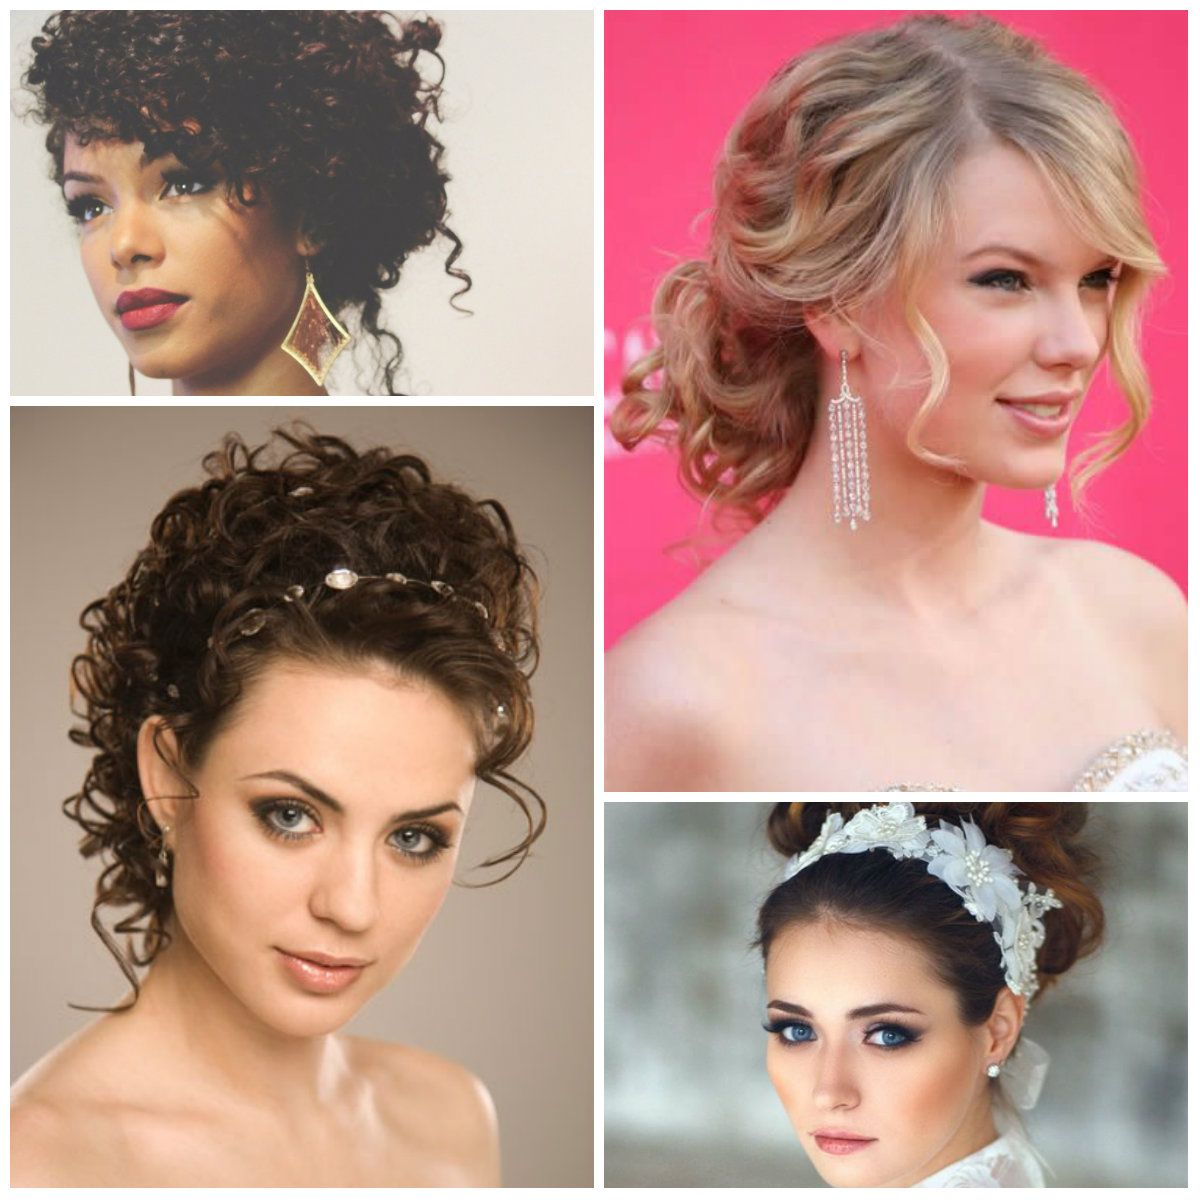 83 Chic Updo Hairstyle Ideas Updo Popular Hairstyles And Medium Hair